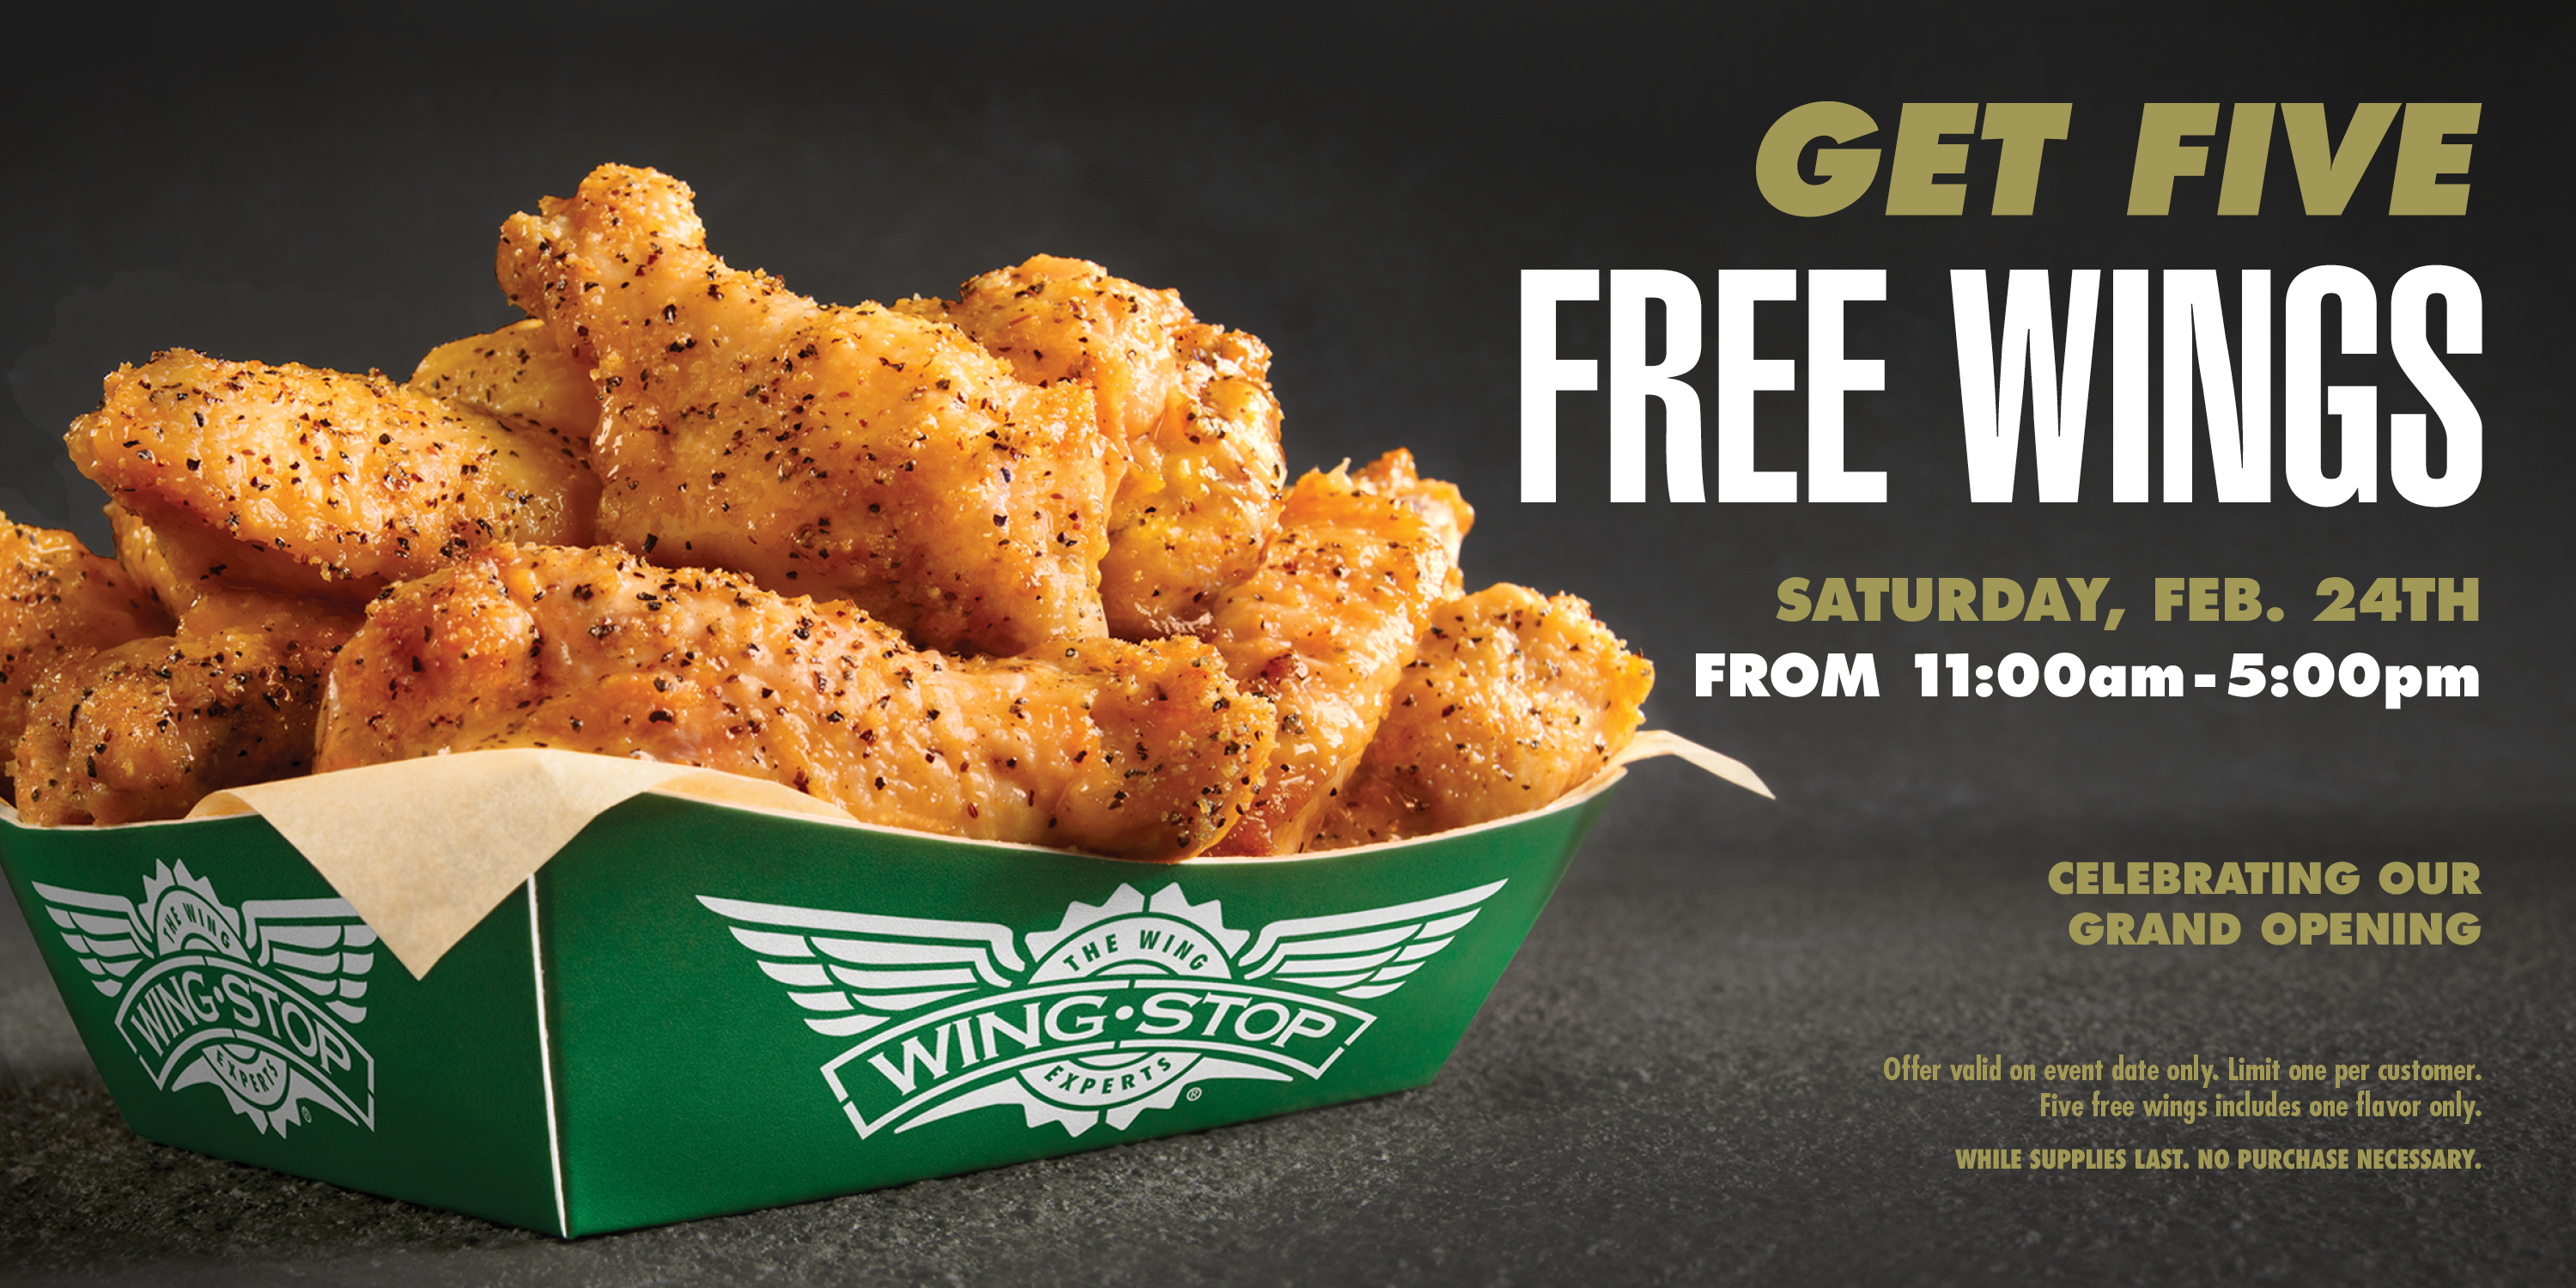 Wingstop West Ashley Grand Opening Event